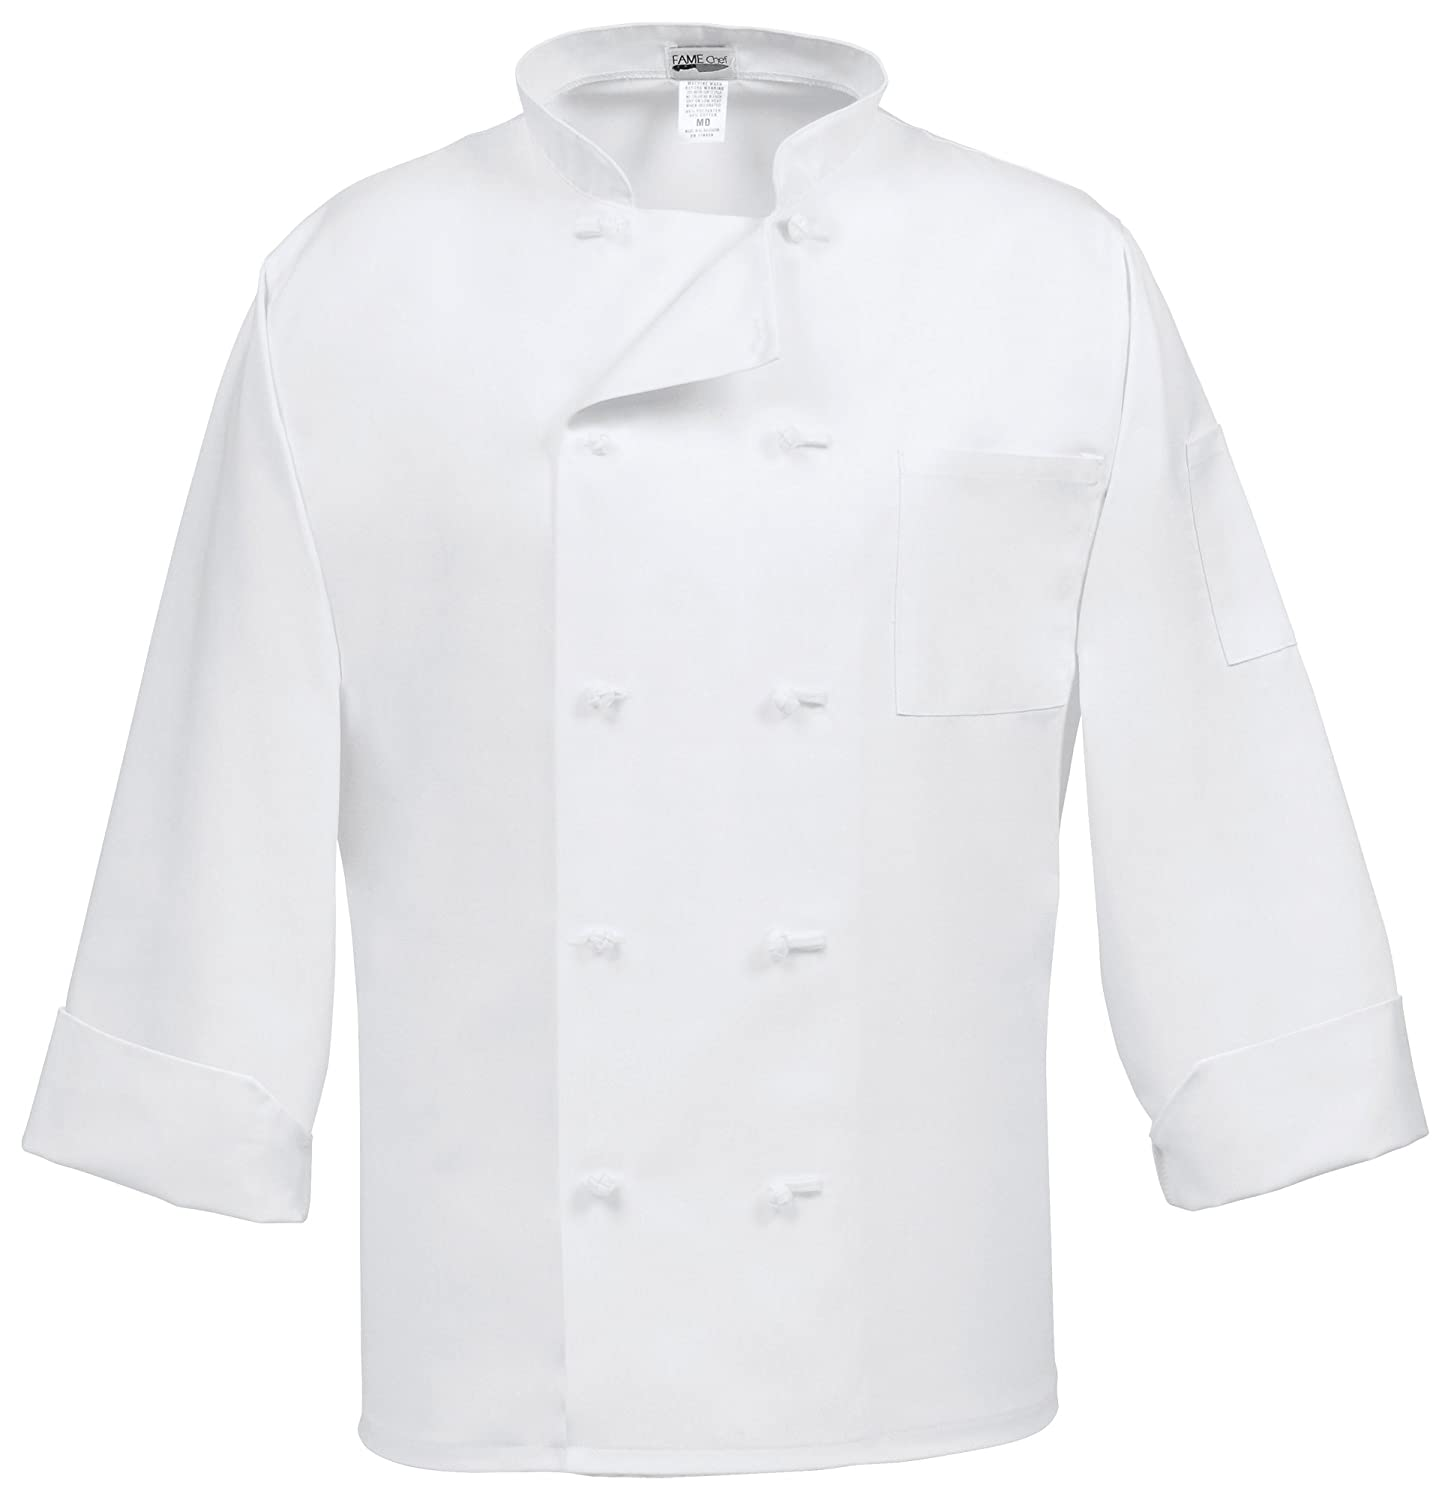 Fame Adult's Chef Coat - French buttons 17